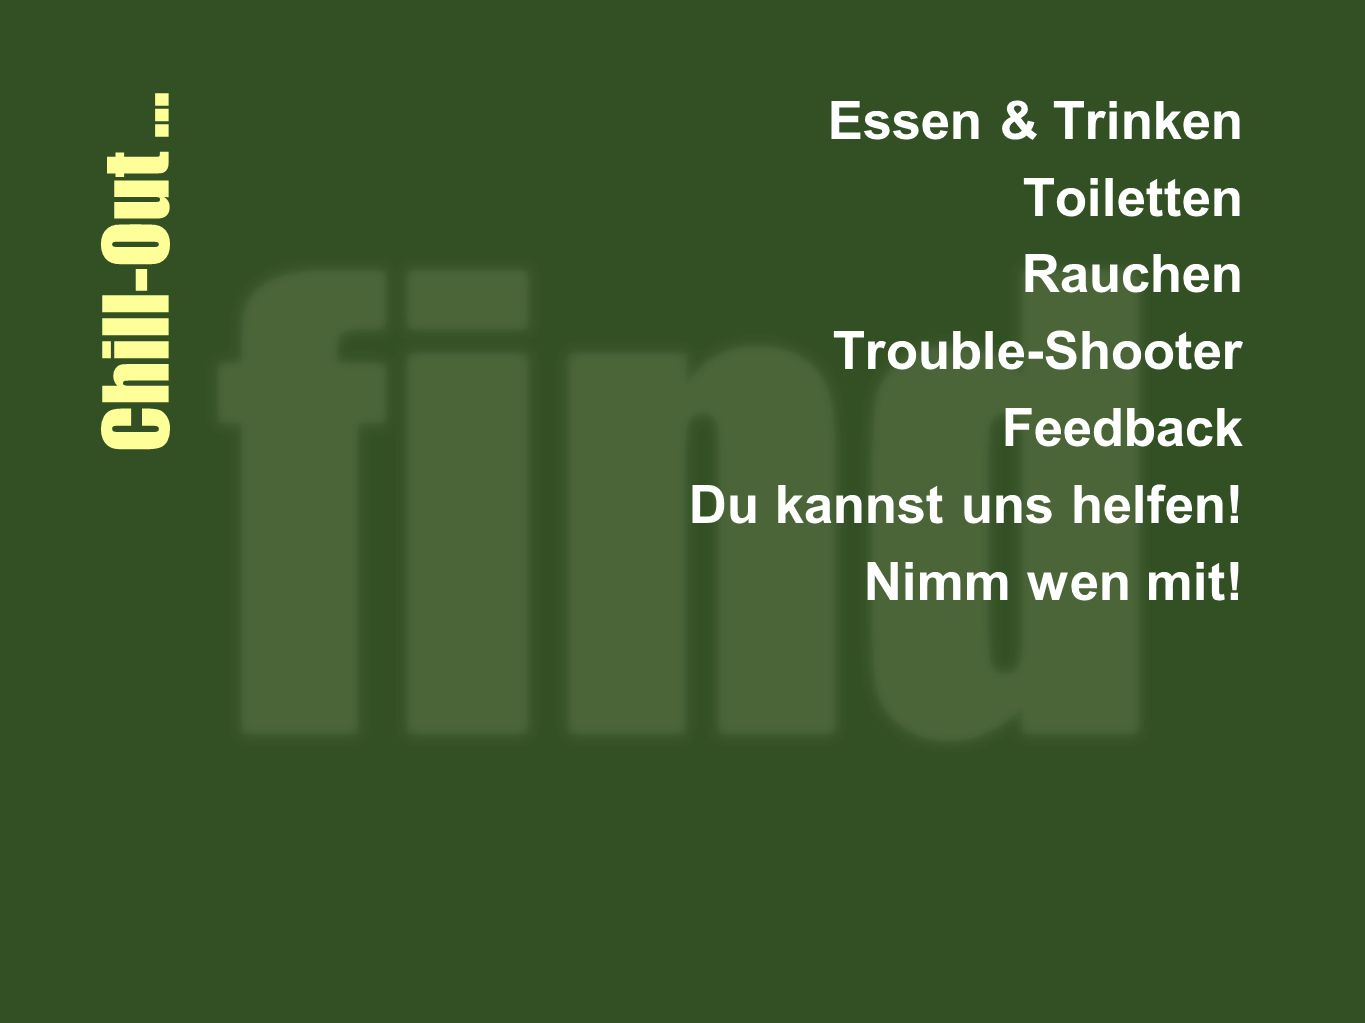 Chill-Out … Essen & Trinken Toiletten Rauchen Trouble-Shooter Feedback